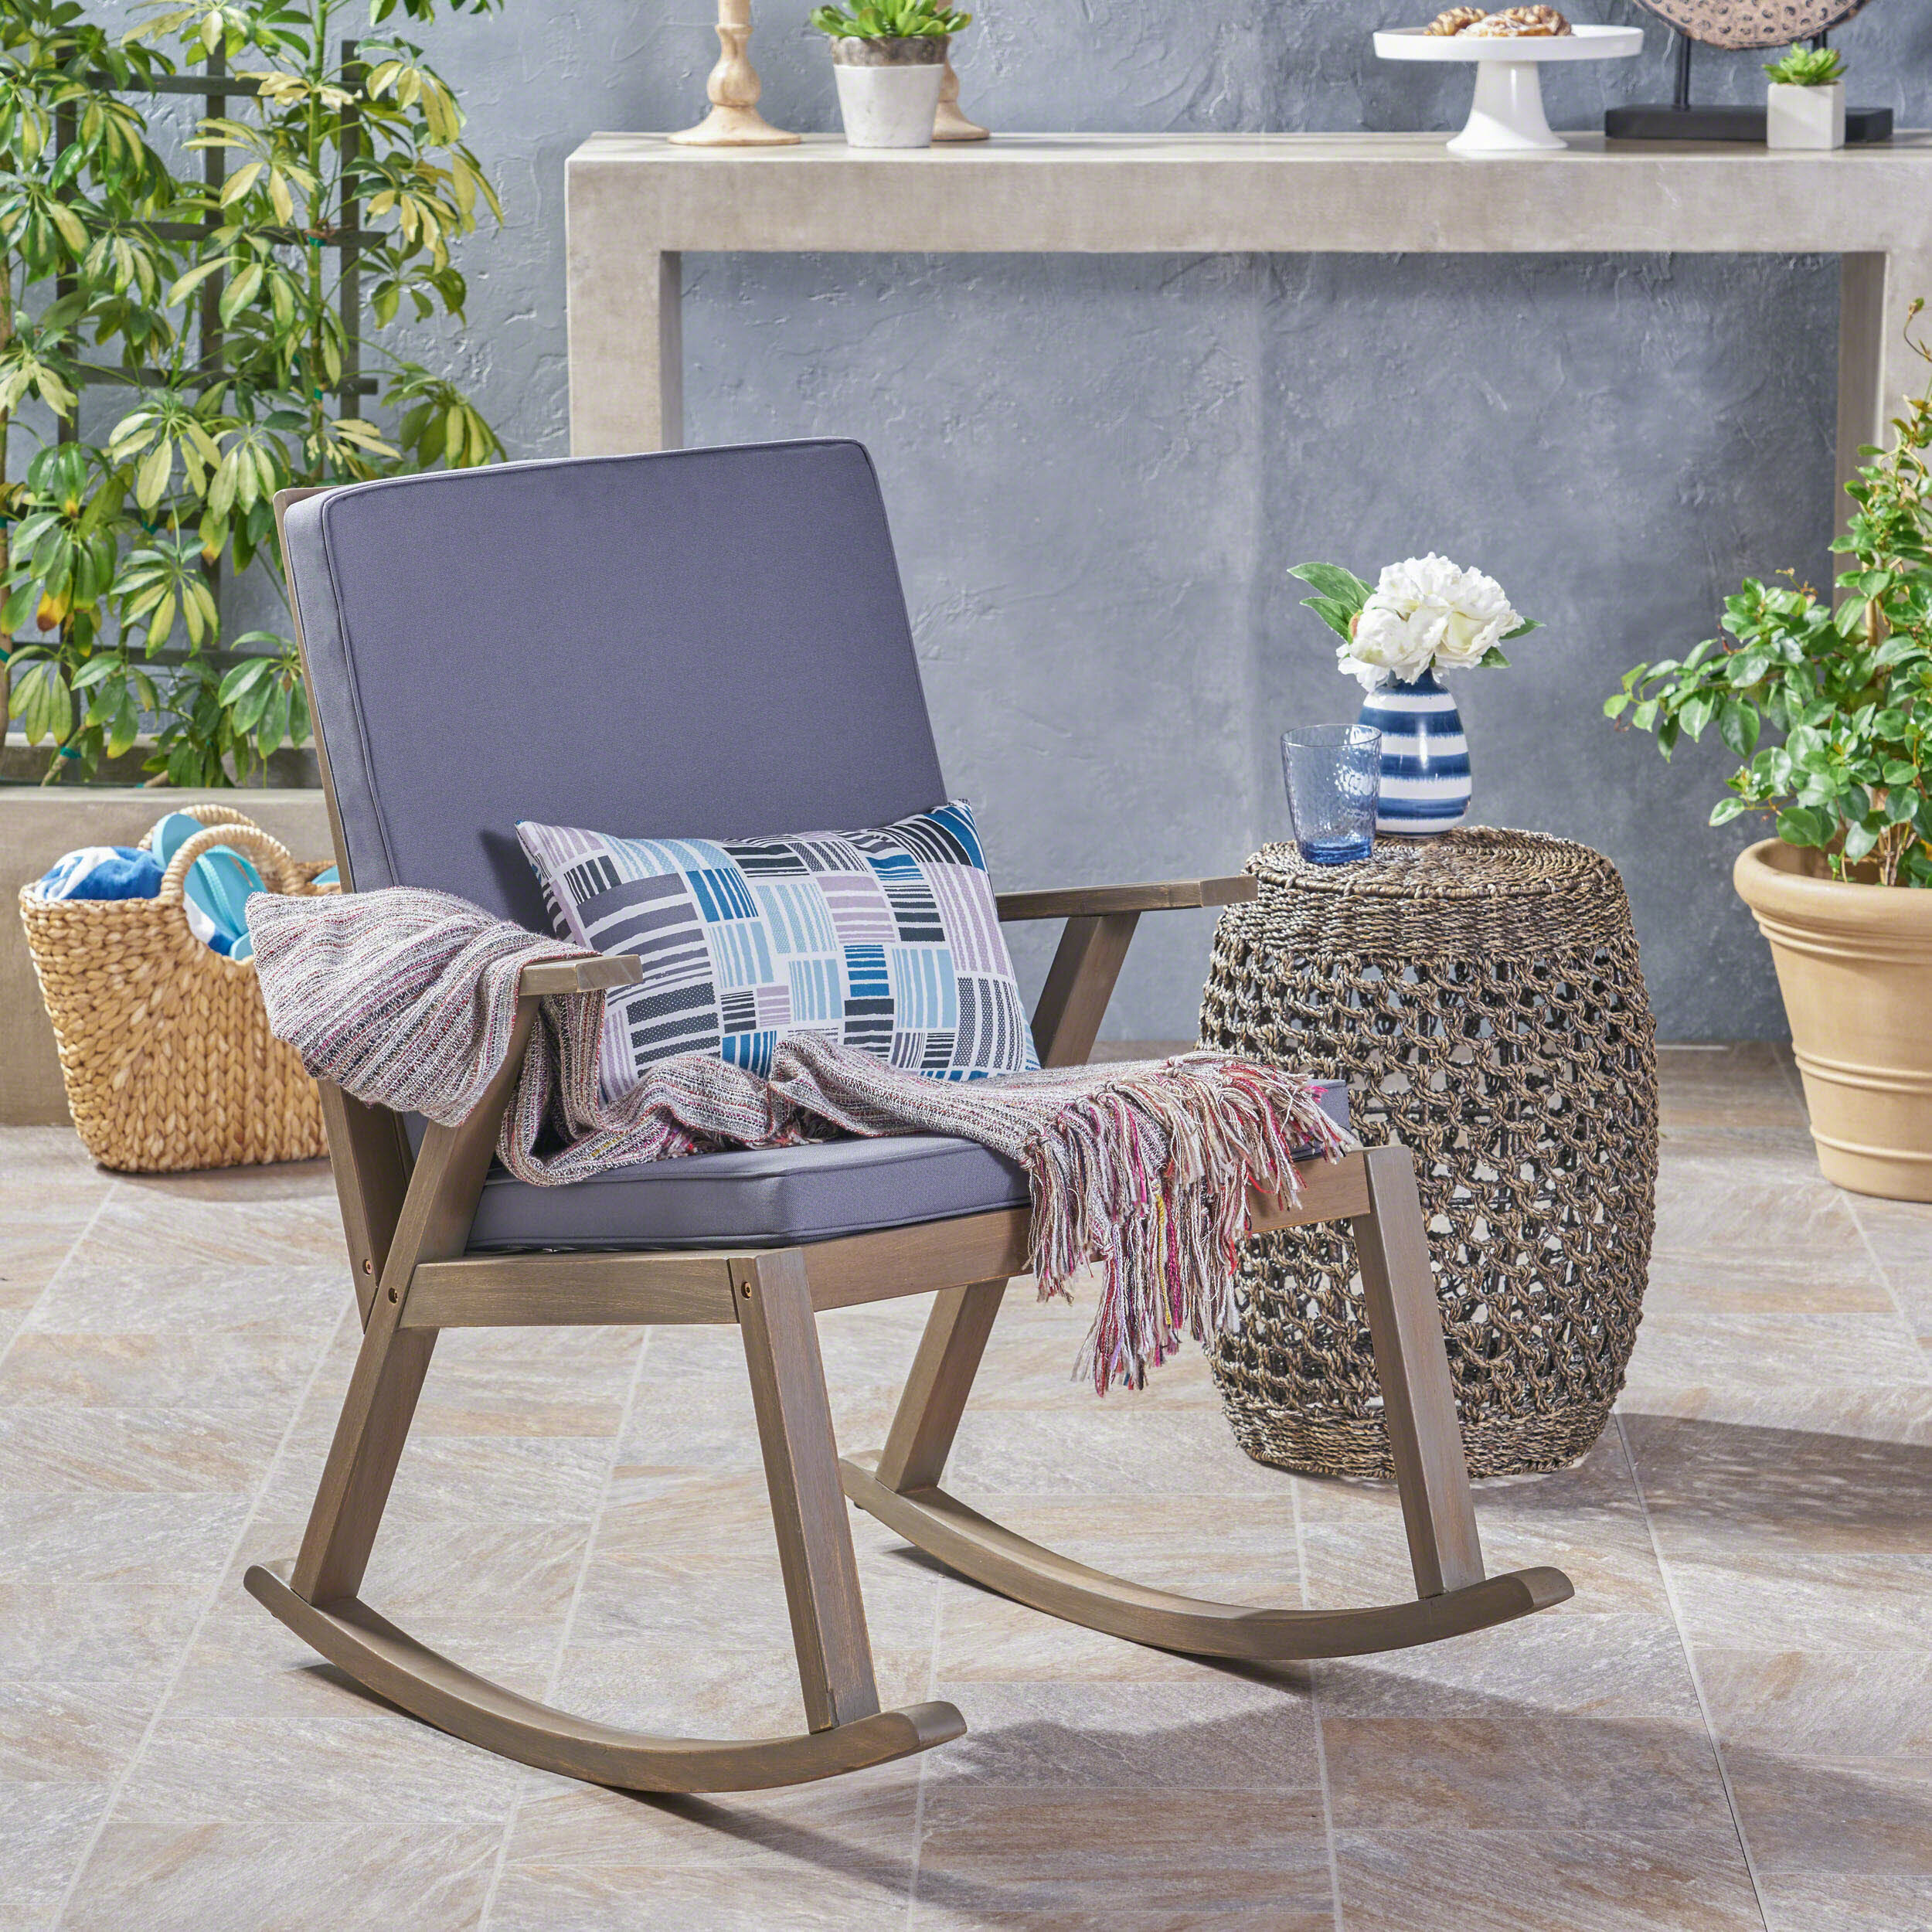 Miraculous Spencer Outdoor Rocking Chair With Cushion Pdpeps Interior Chair Design Pdpepsorg